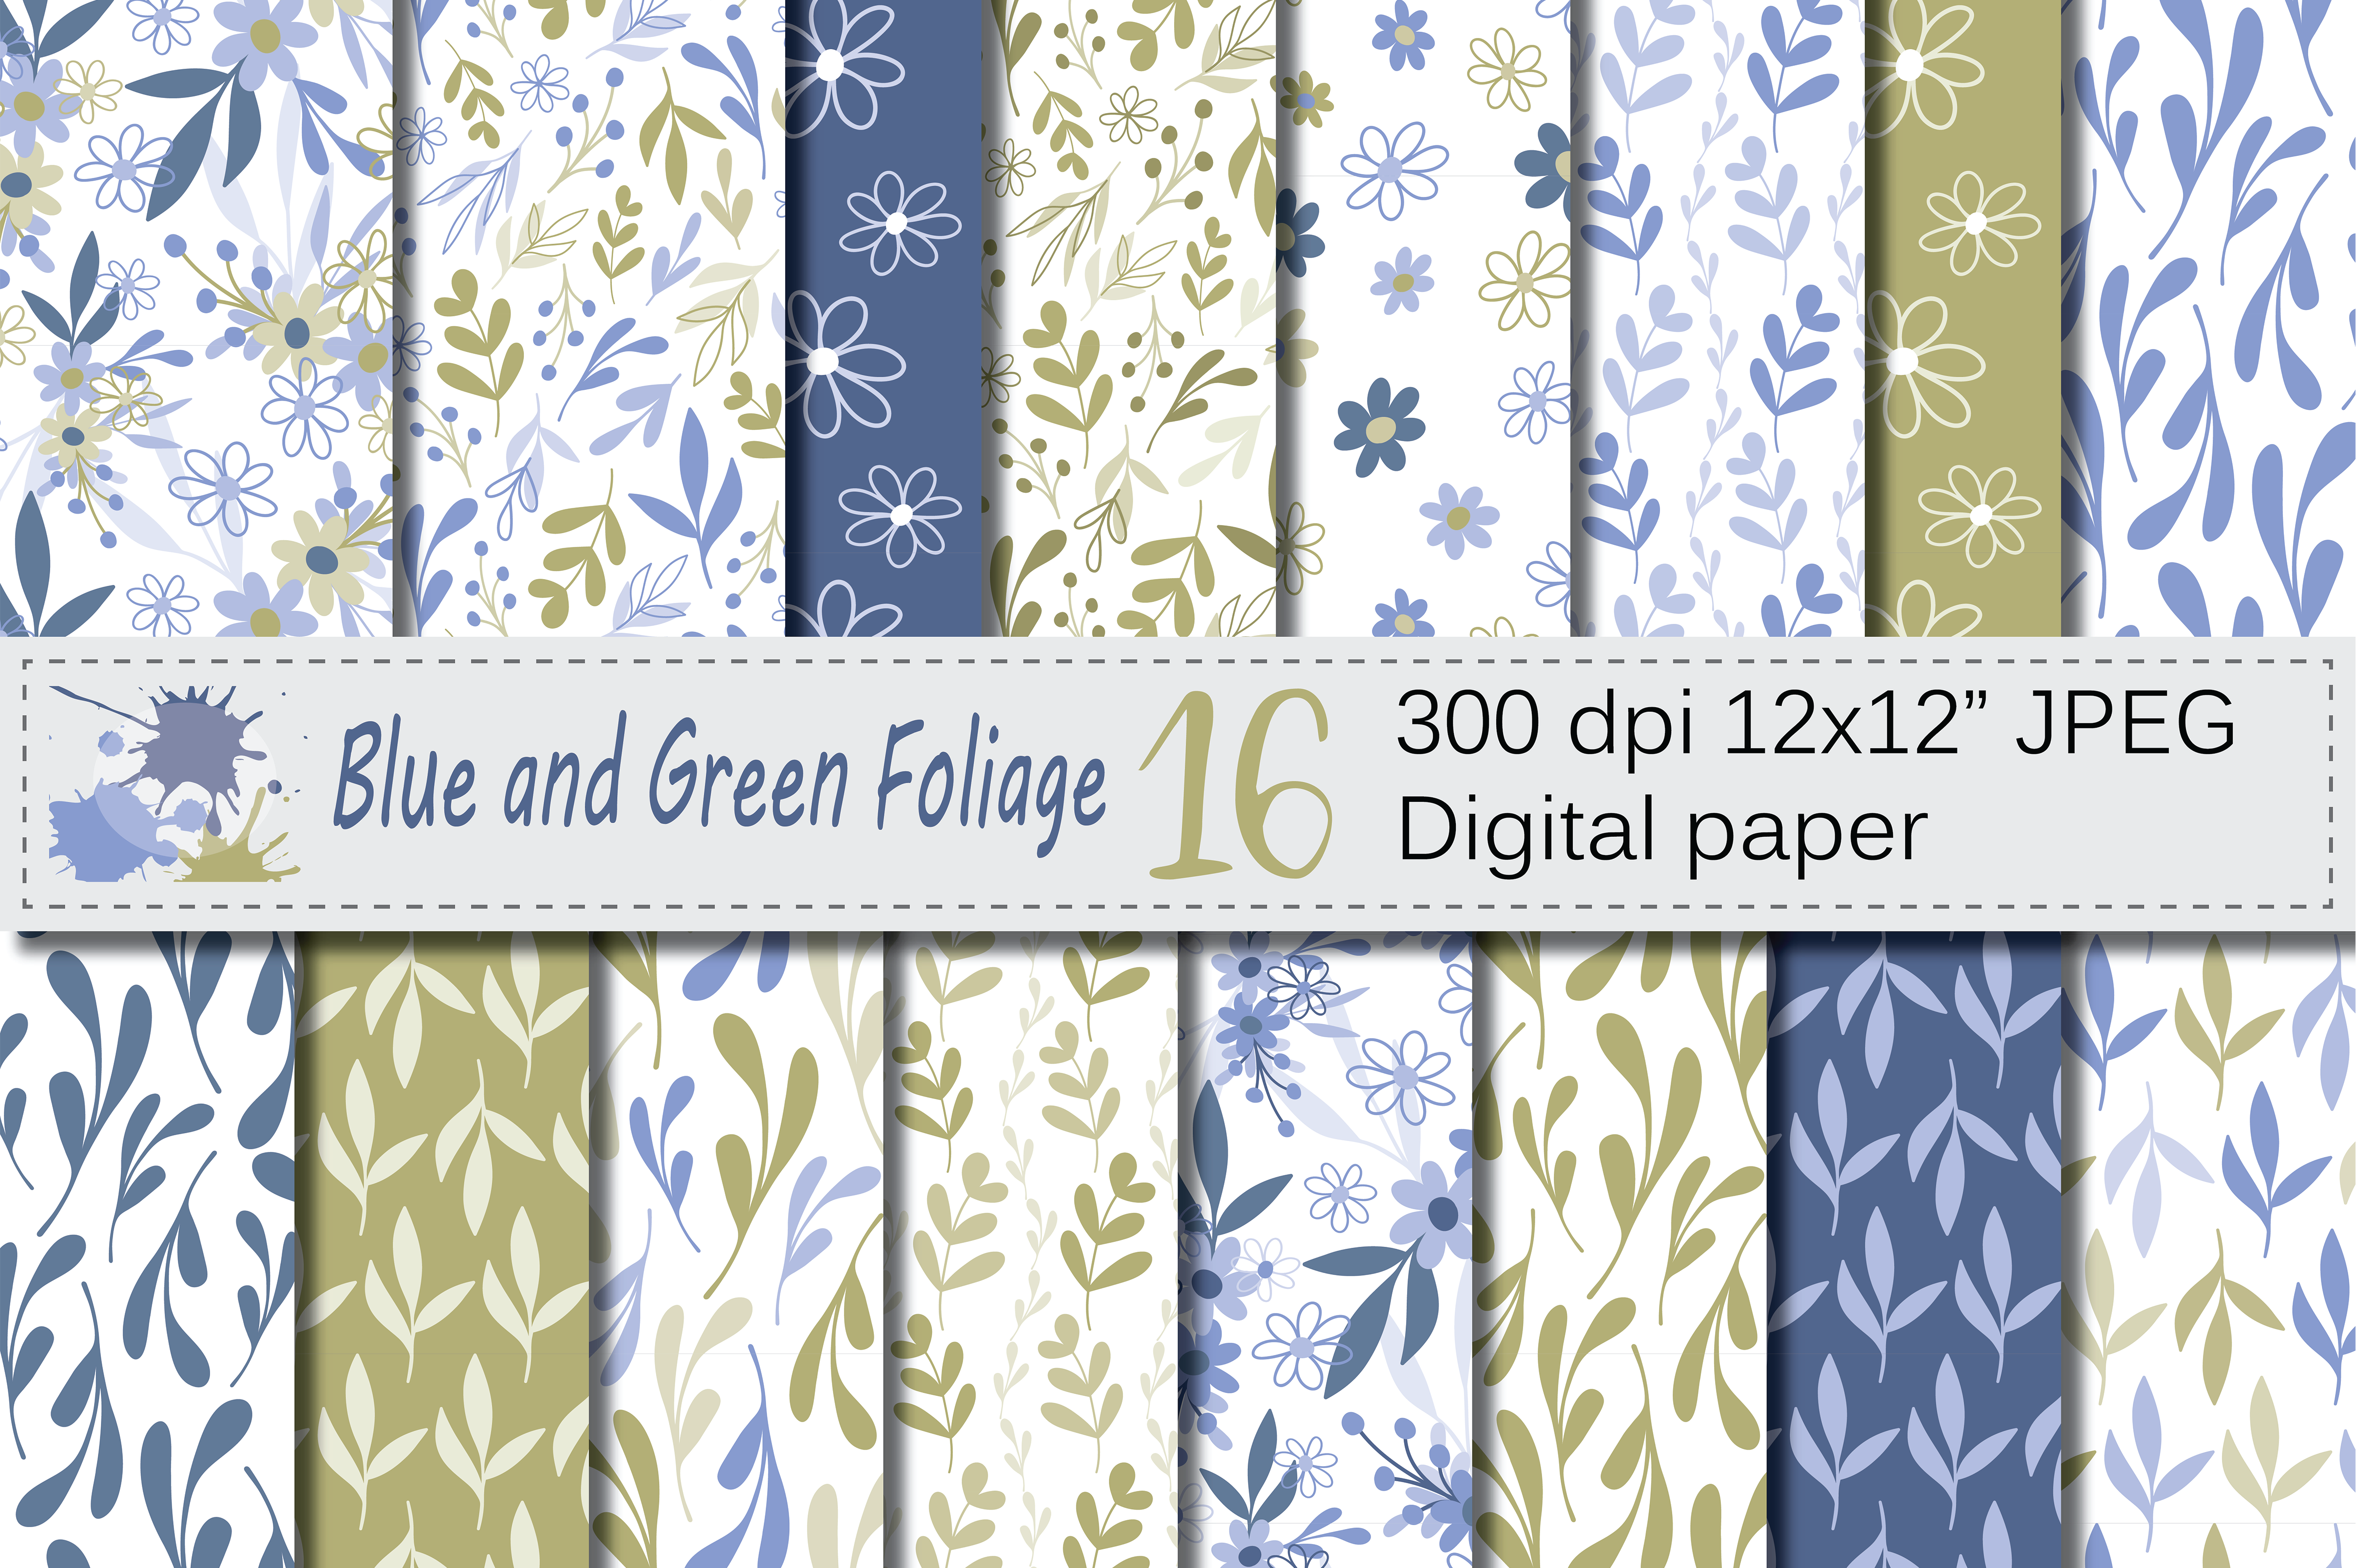 Seamless Blue and Green Hand Drawn Flowers and Leaves Digital Paper / Pastel Foliage Seamless Pattern Graphic Patterns By VR Digital Design